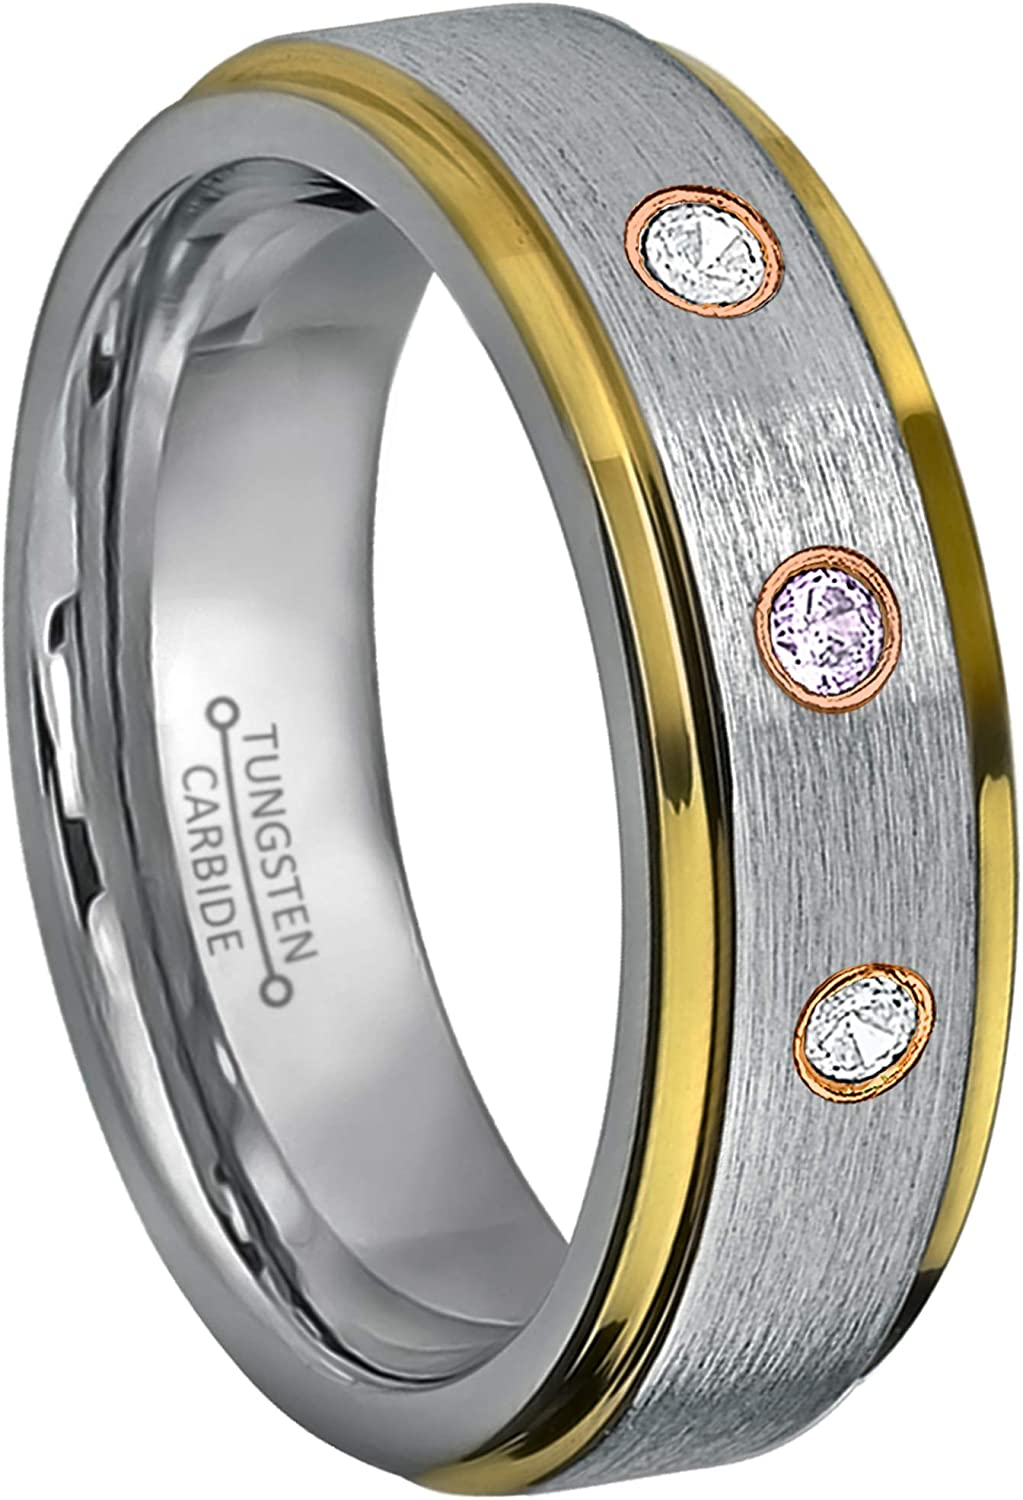 0.21ctw Amethyst /& Diamond 3-Stone Tungsten Ring Jewelry Avalanche 6MM Polished 2-Tone Yellow Gold Beveled Edge Tungsten Carbide Wedding Band